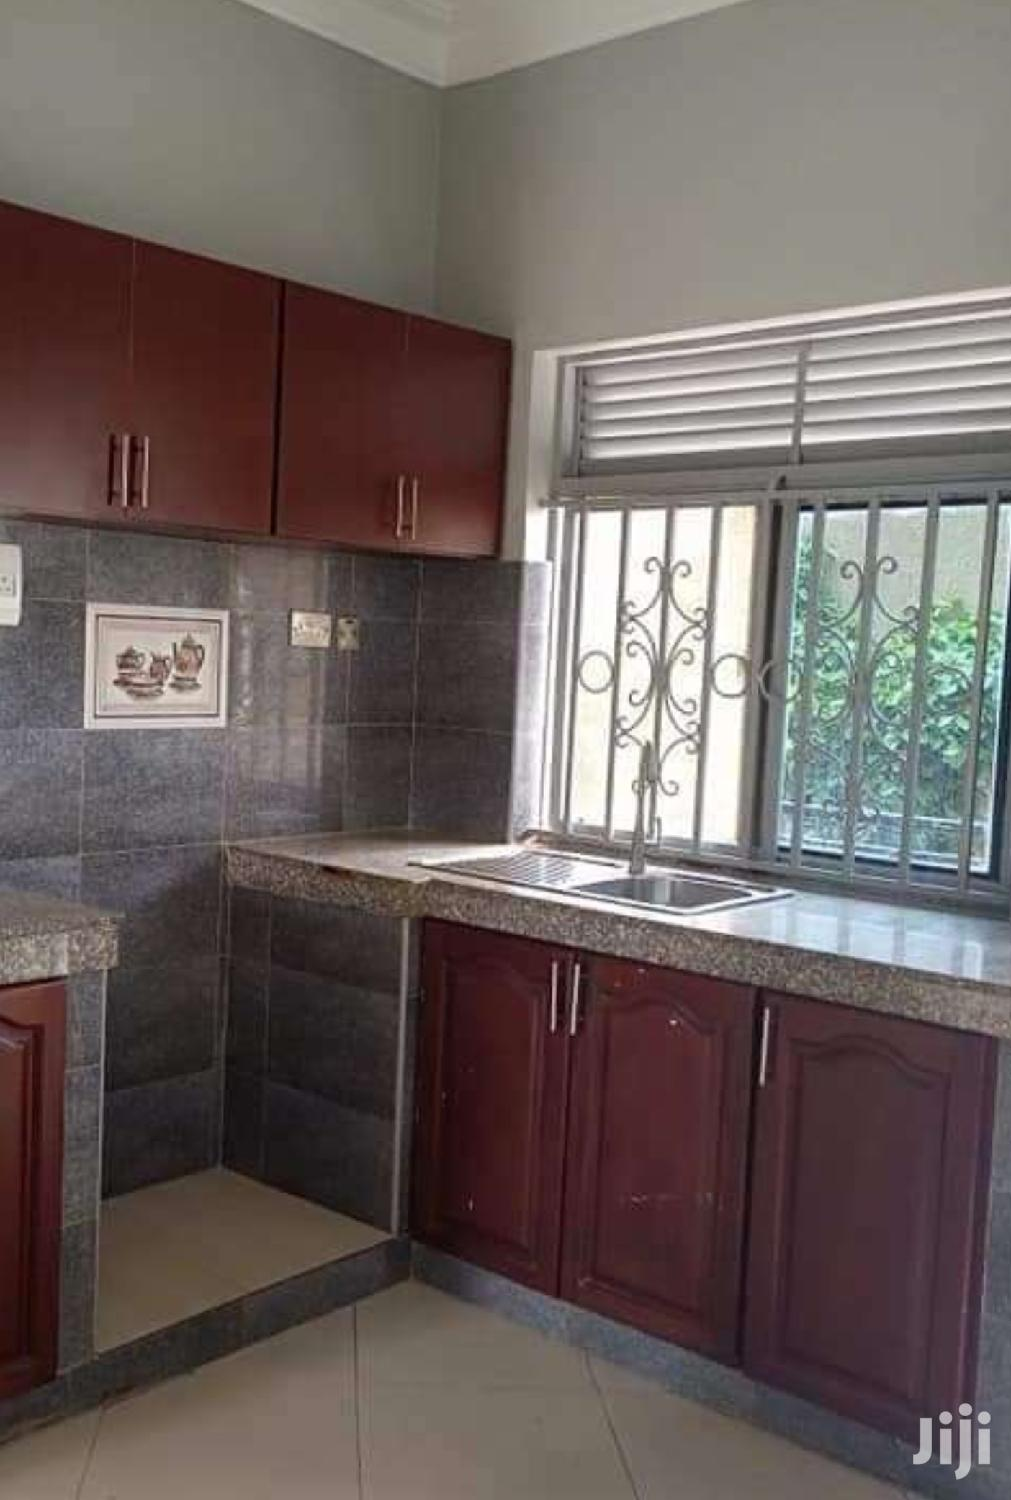 Bukoto Kyebando Brand New Apartment For Rent | Houses & Apartments For Rent for sale in Kampala, Central Region, Uganda